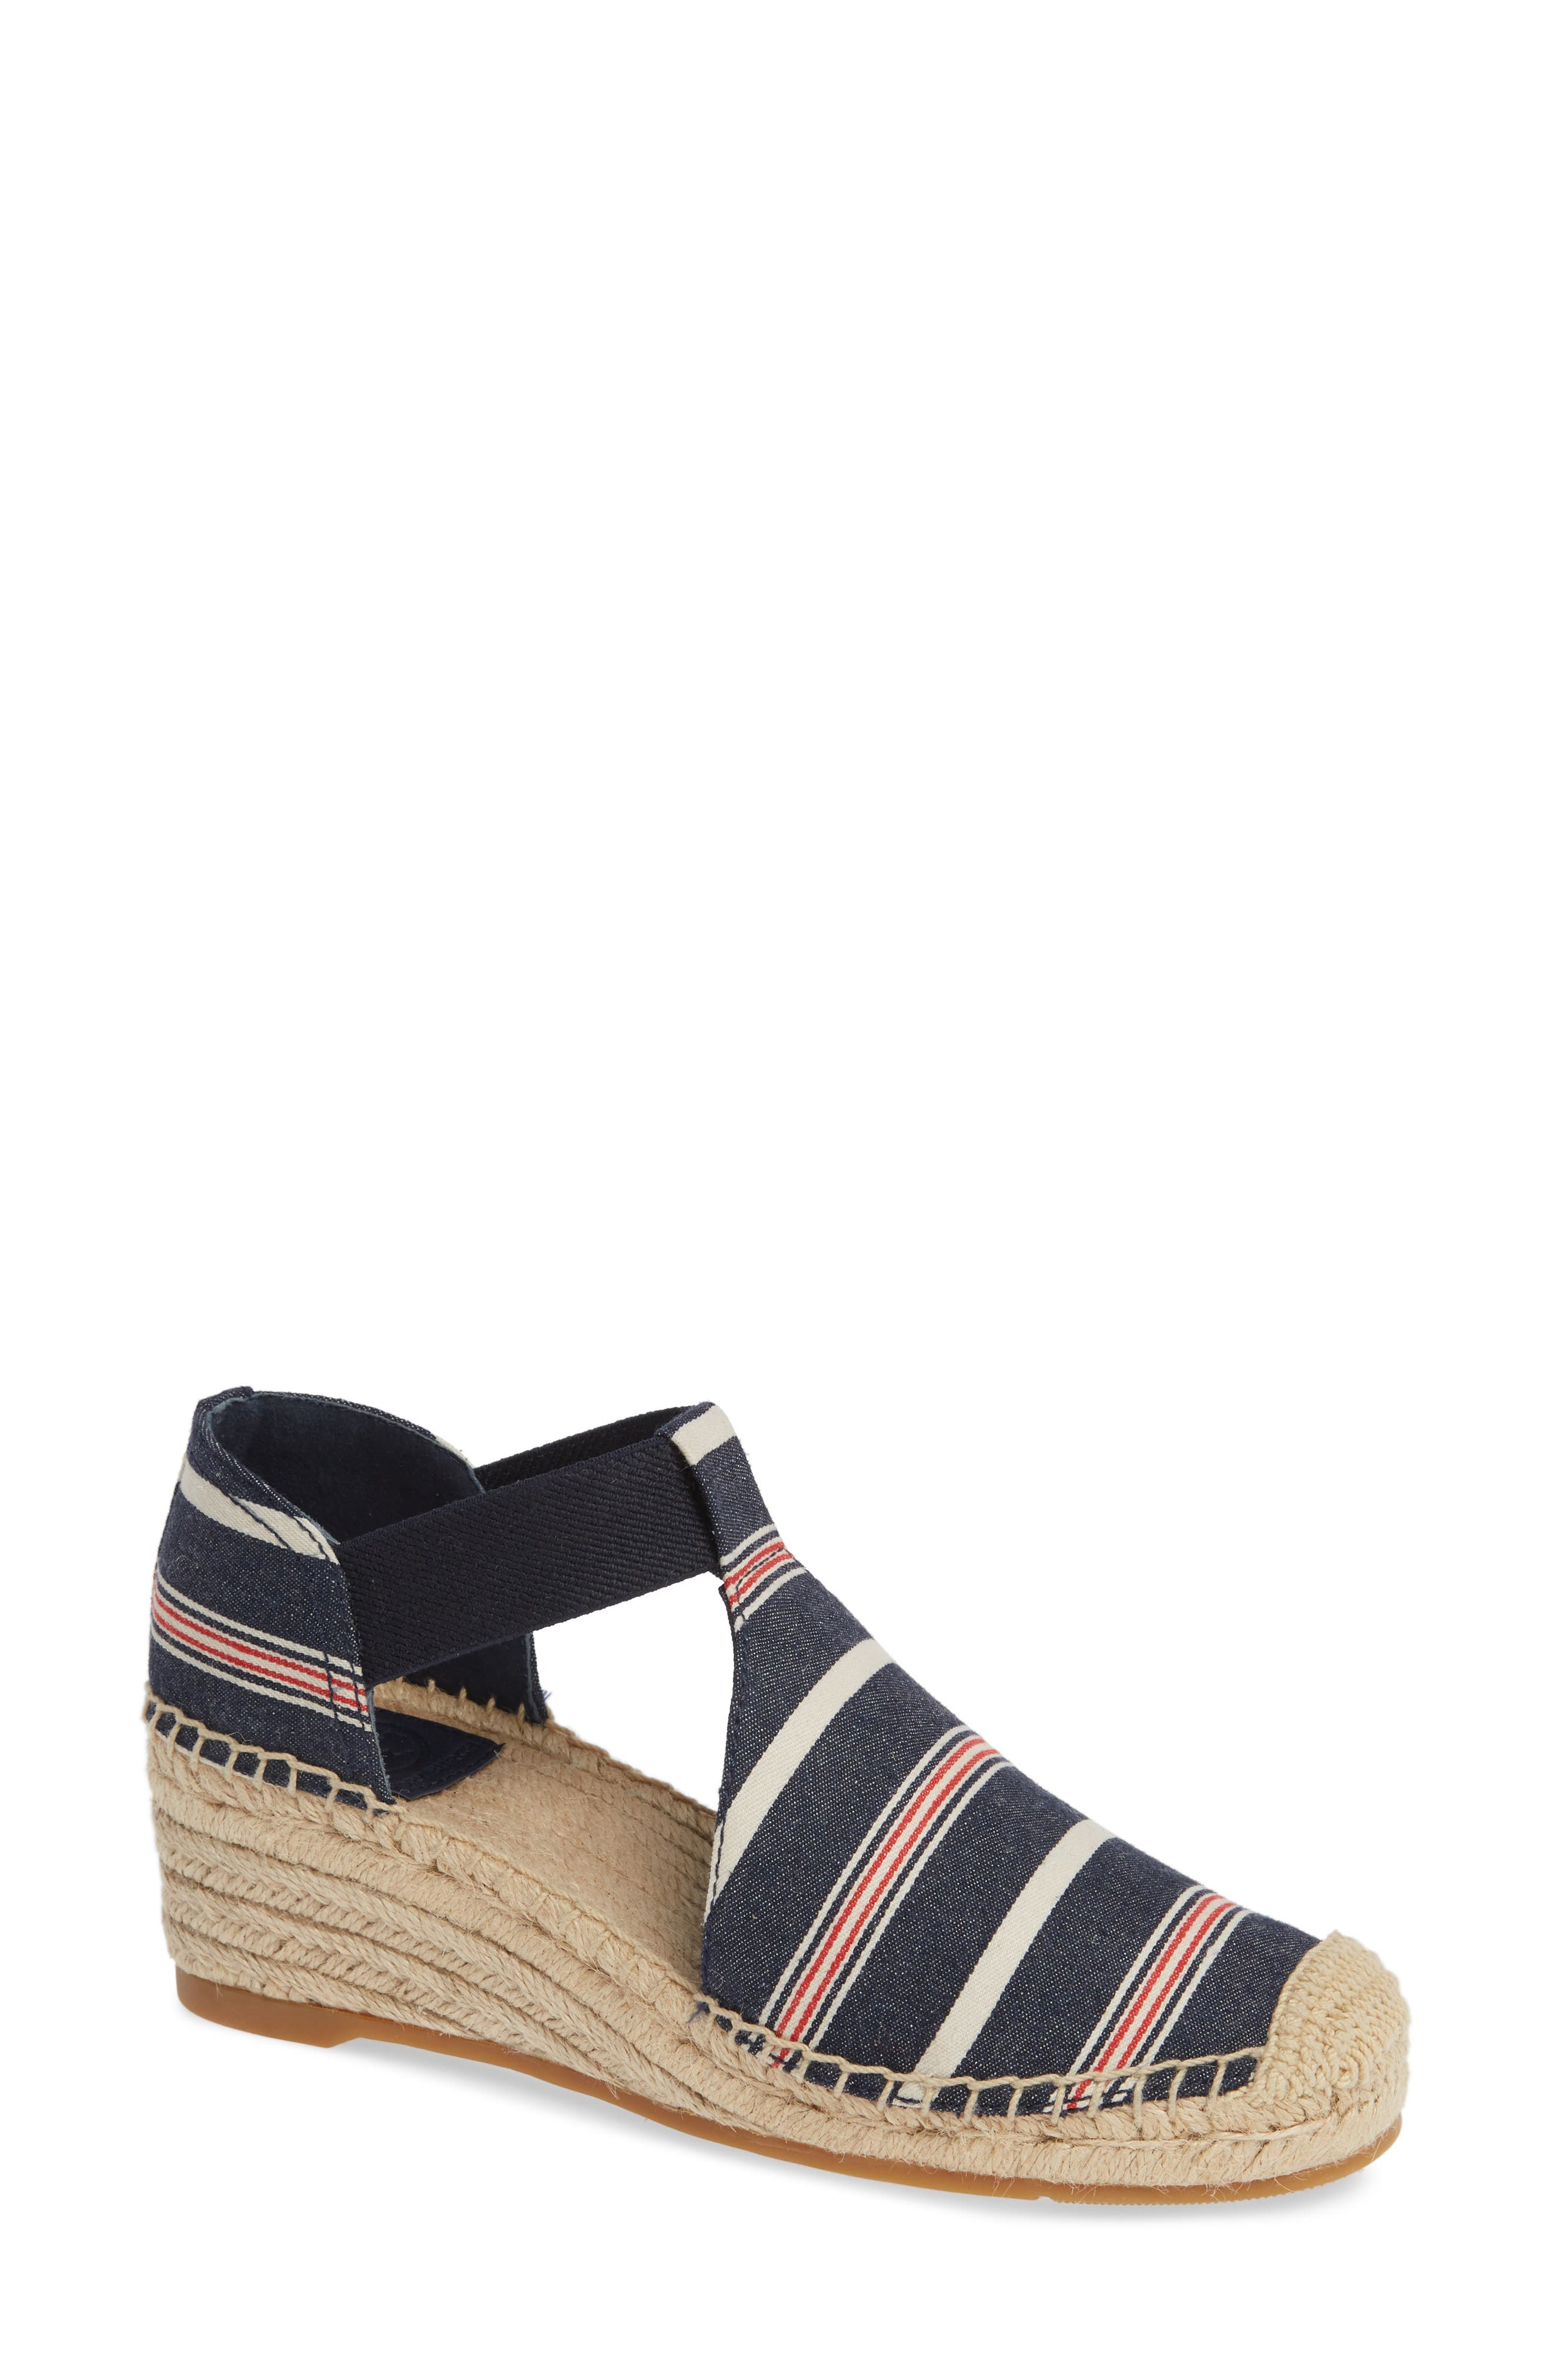 Tory Burch Catalina 3 Espadrille Wedge Sandal (Women)